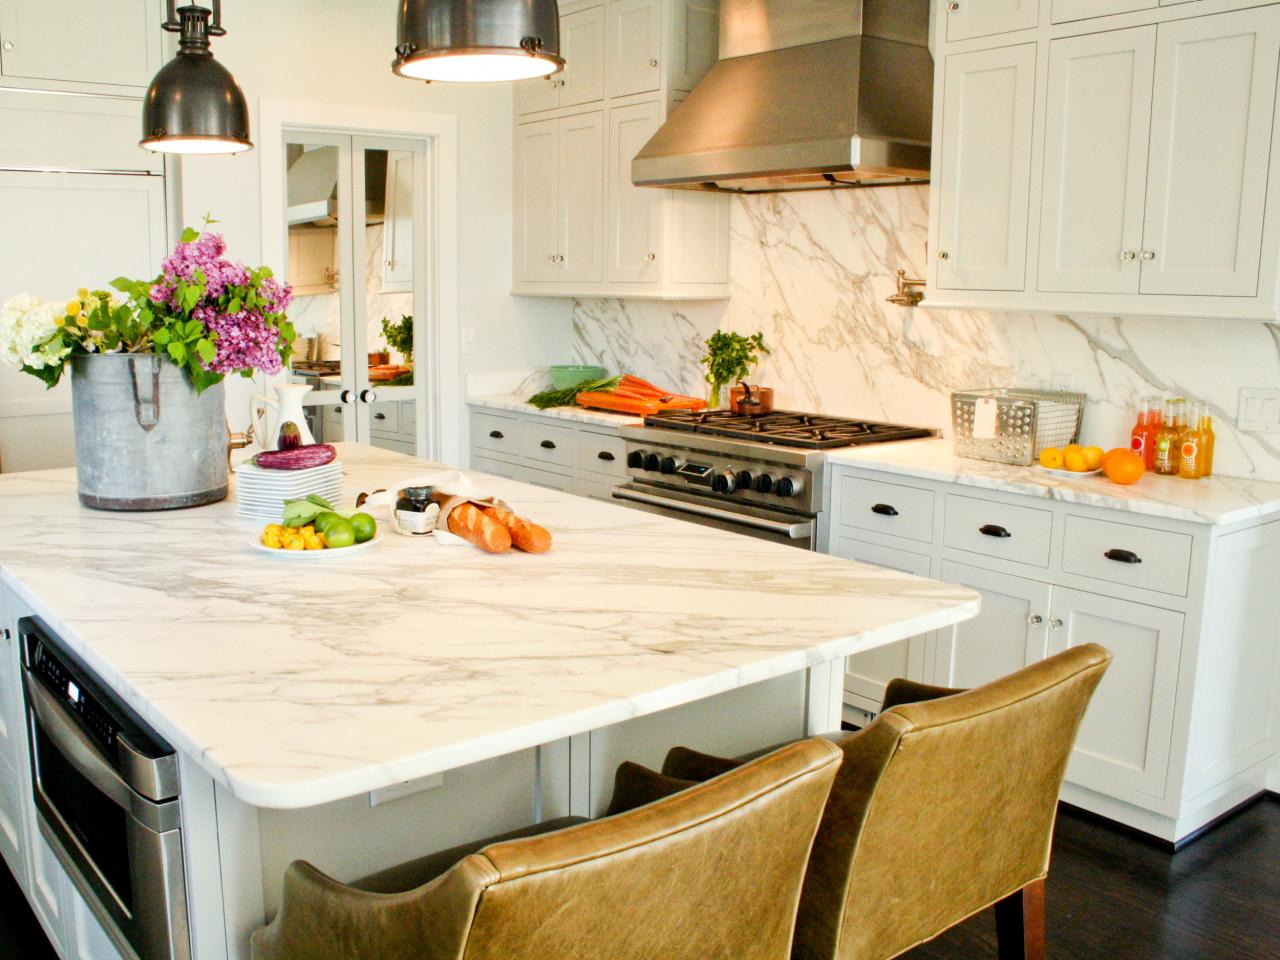 White Quartz Kitchen Countertops quartz: the new countertop contender | hgtv